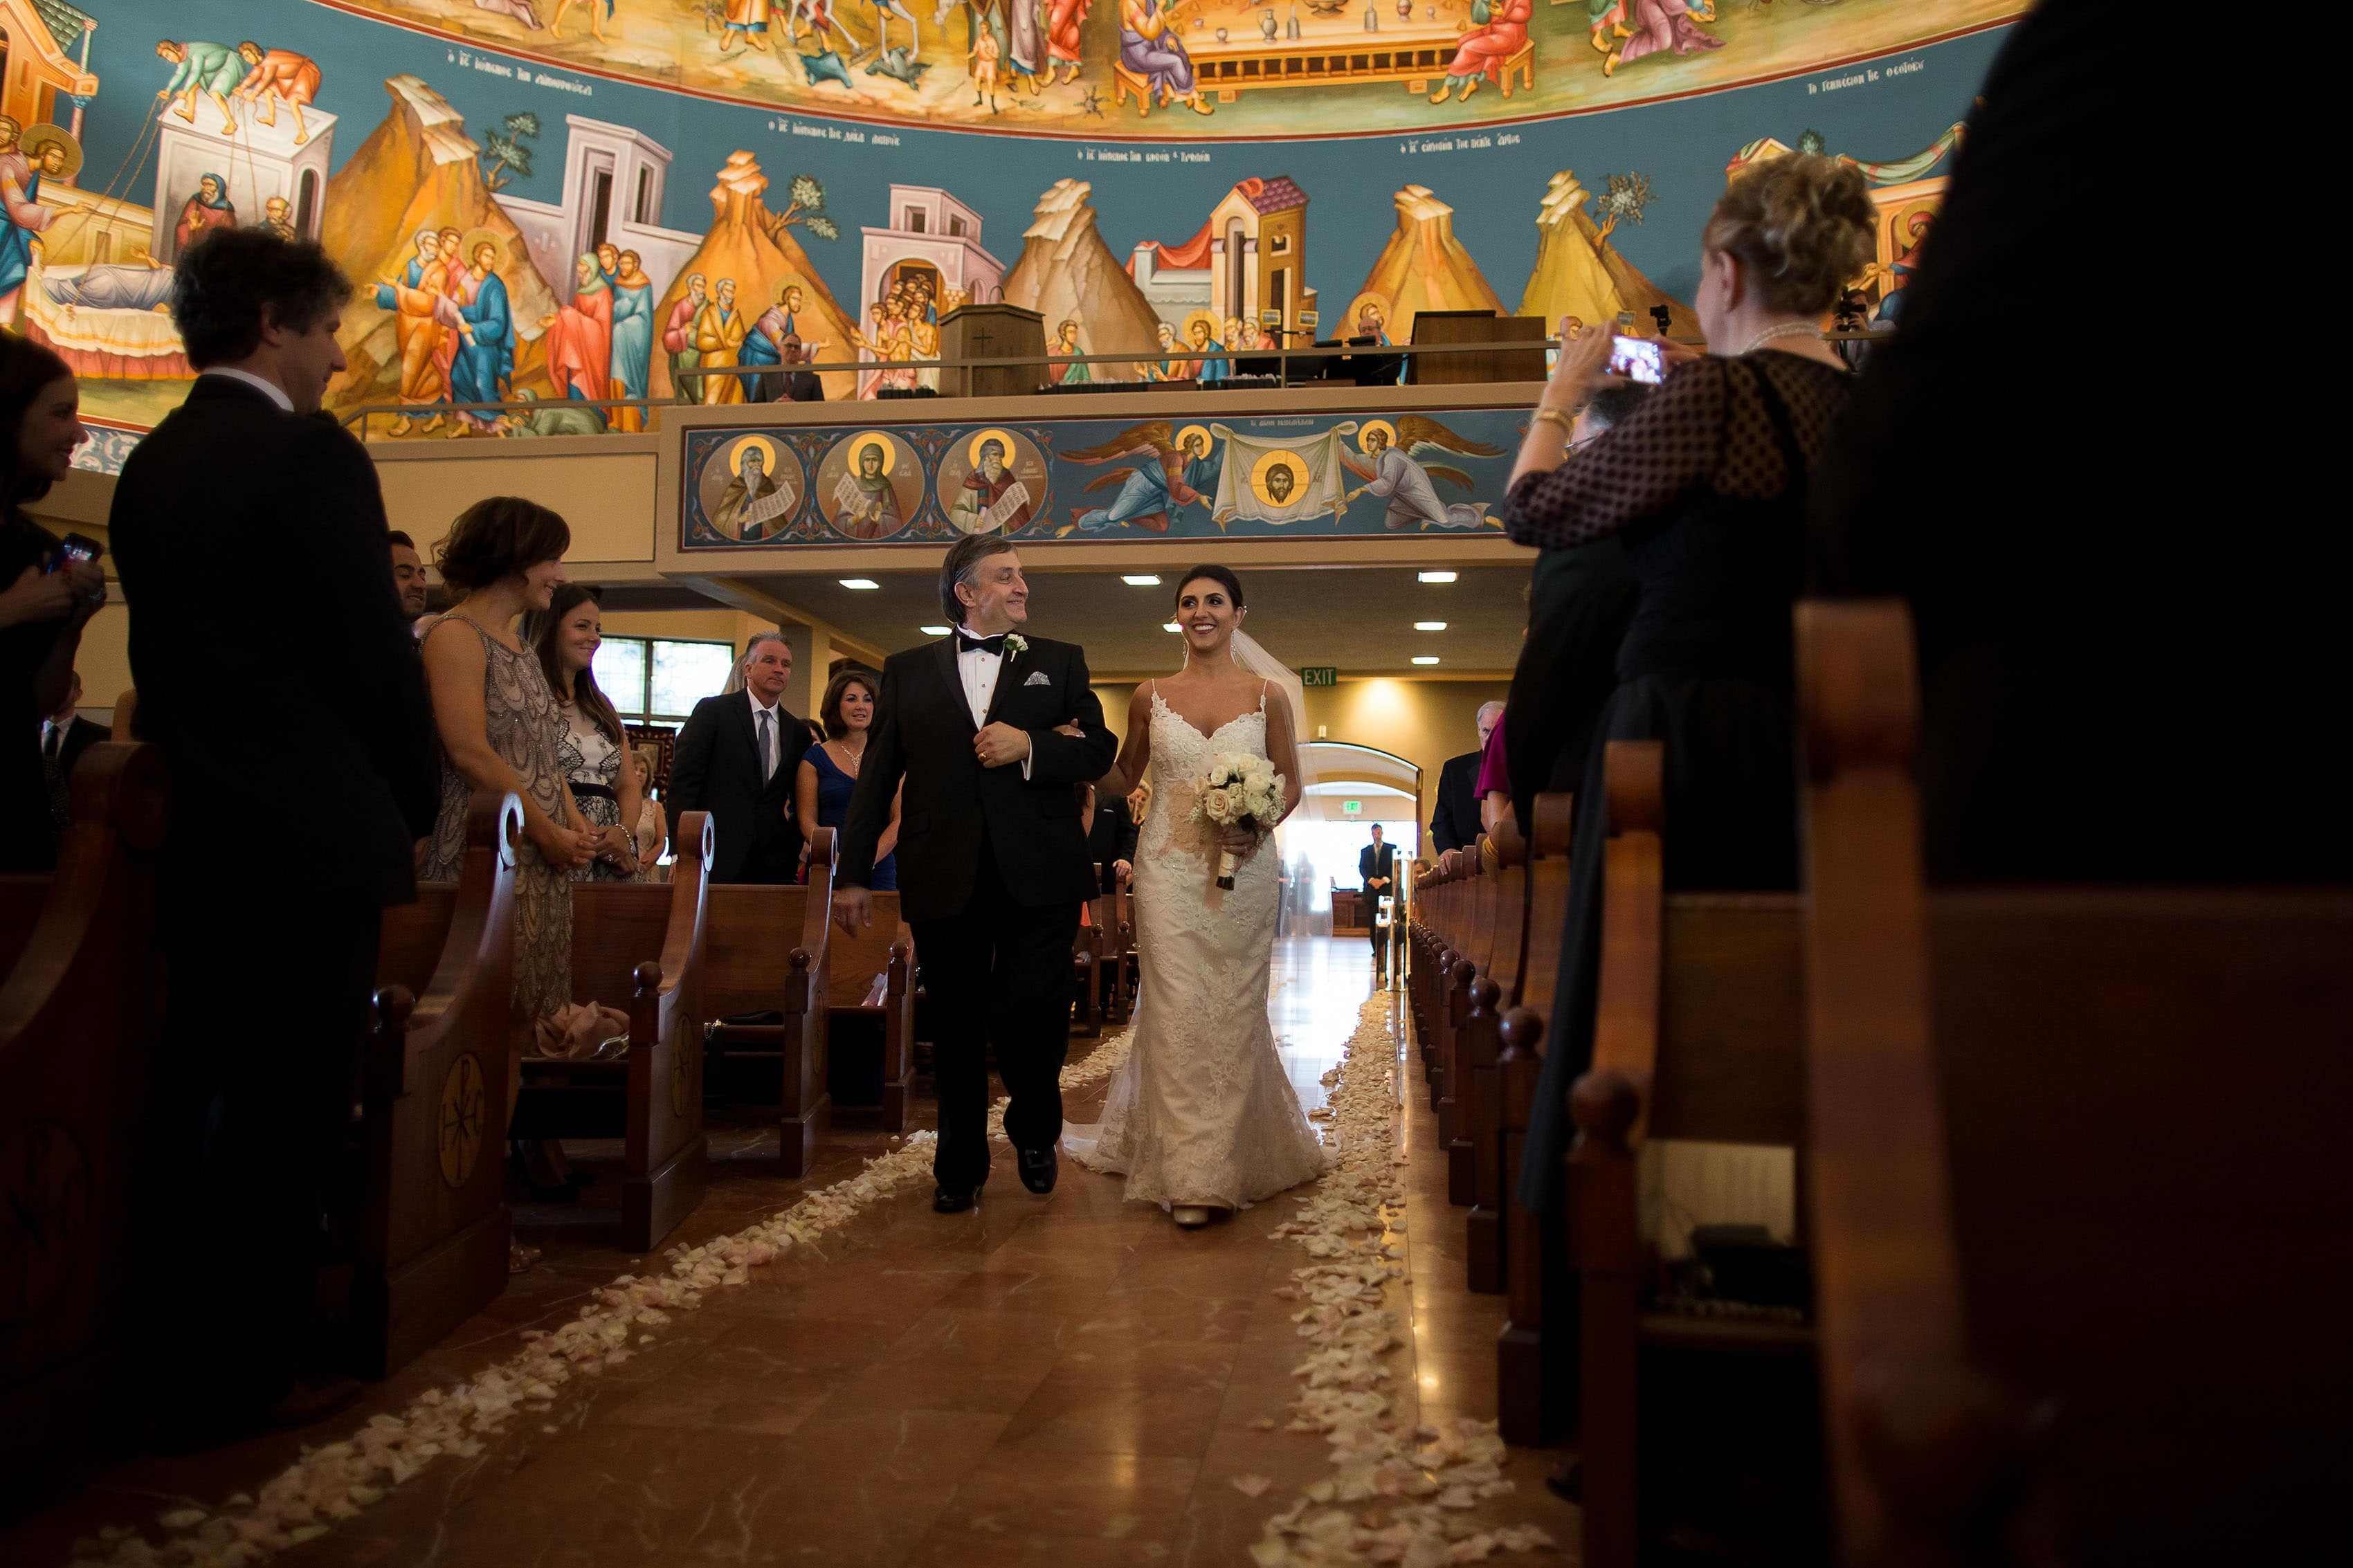 Marika walks down the aisle with her father at Assumption Greek Orthodox Cathedral